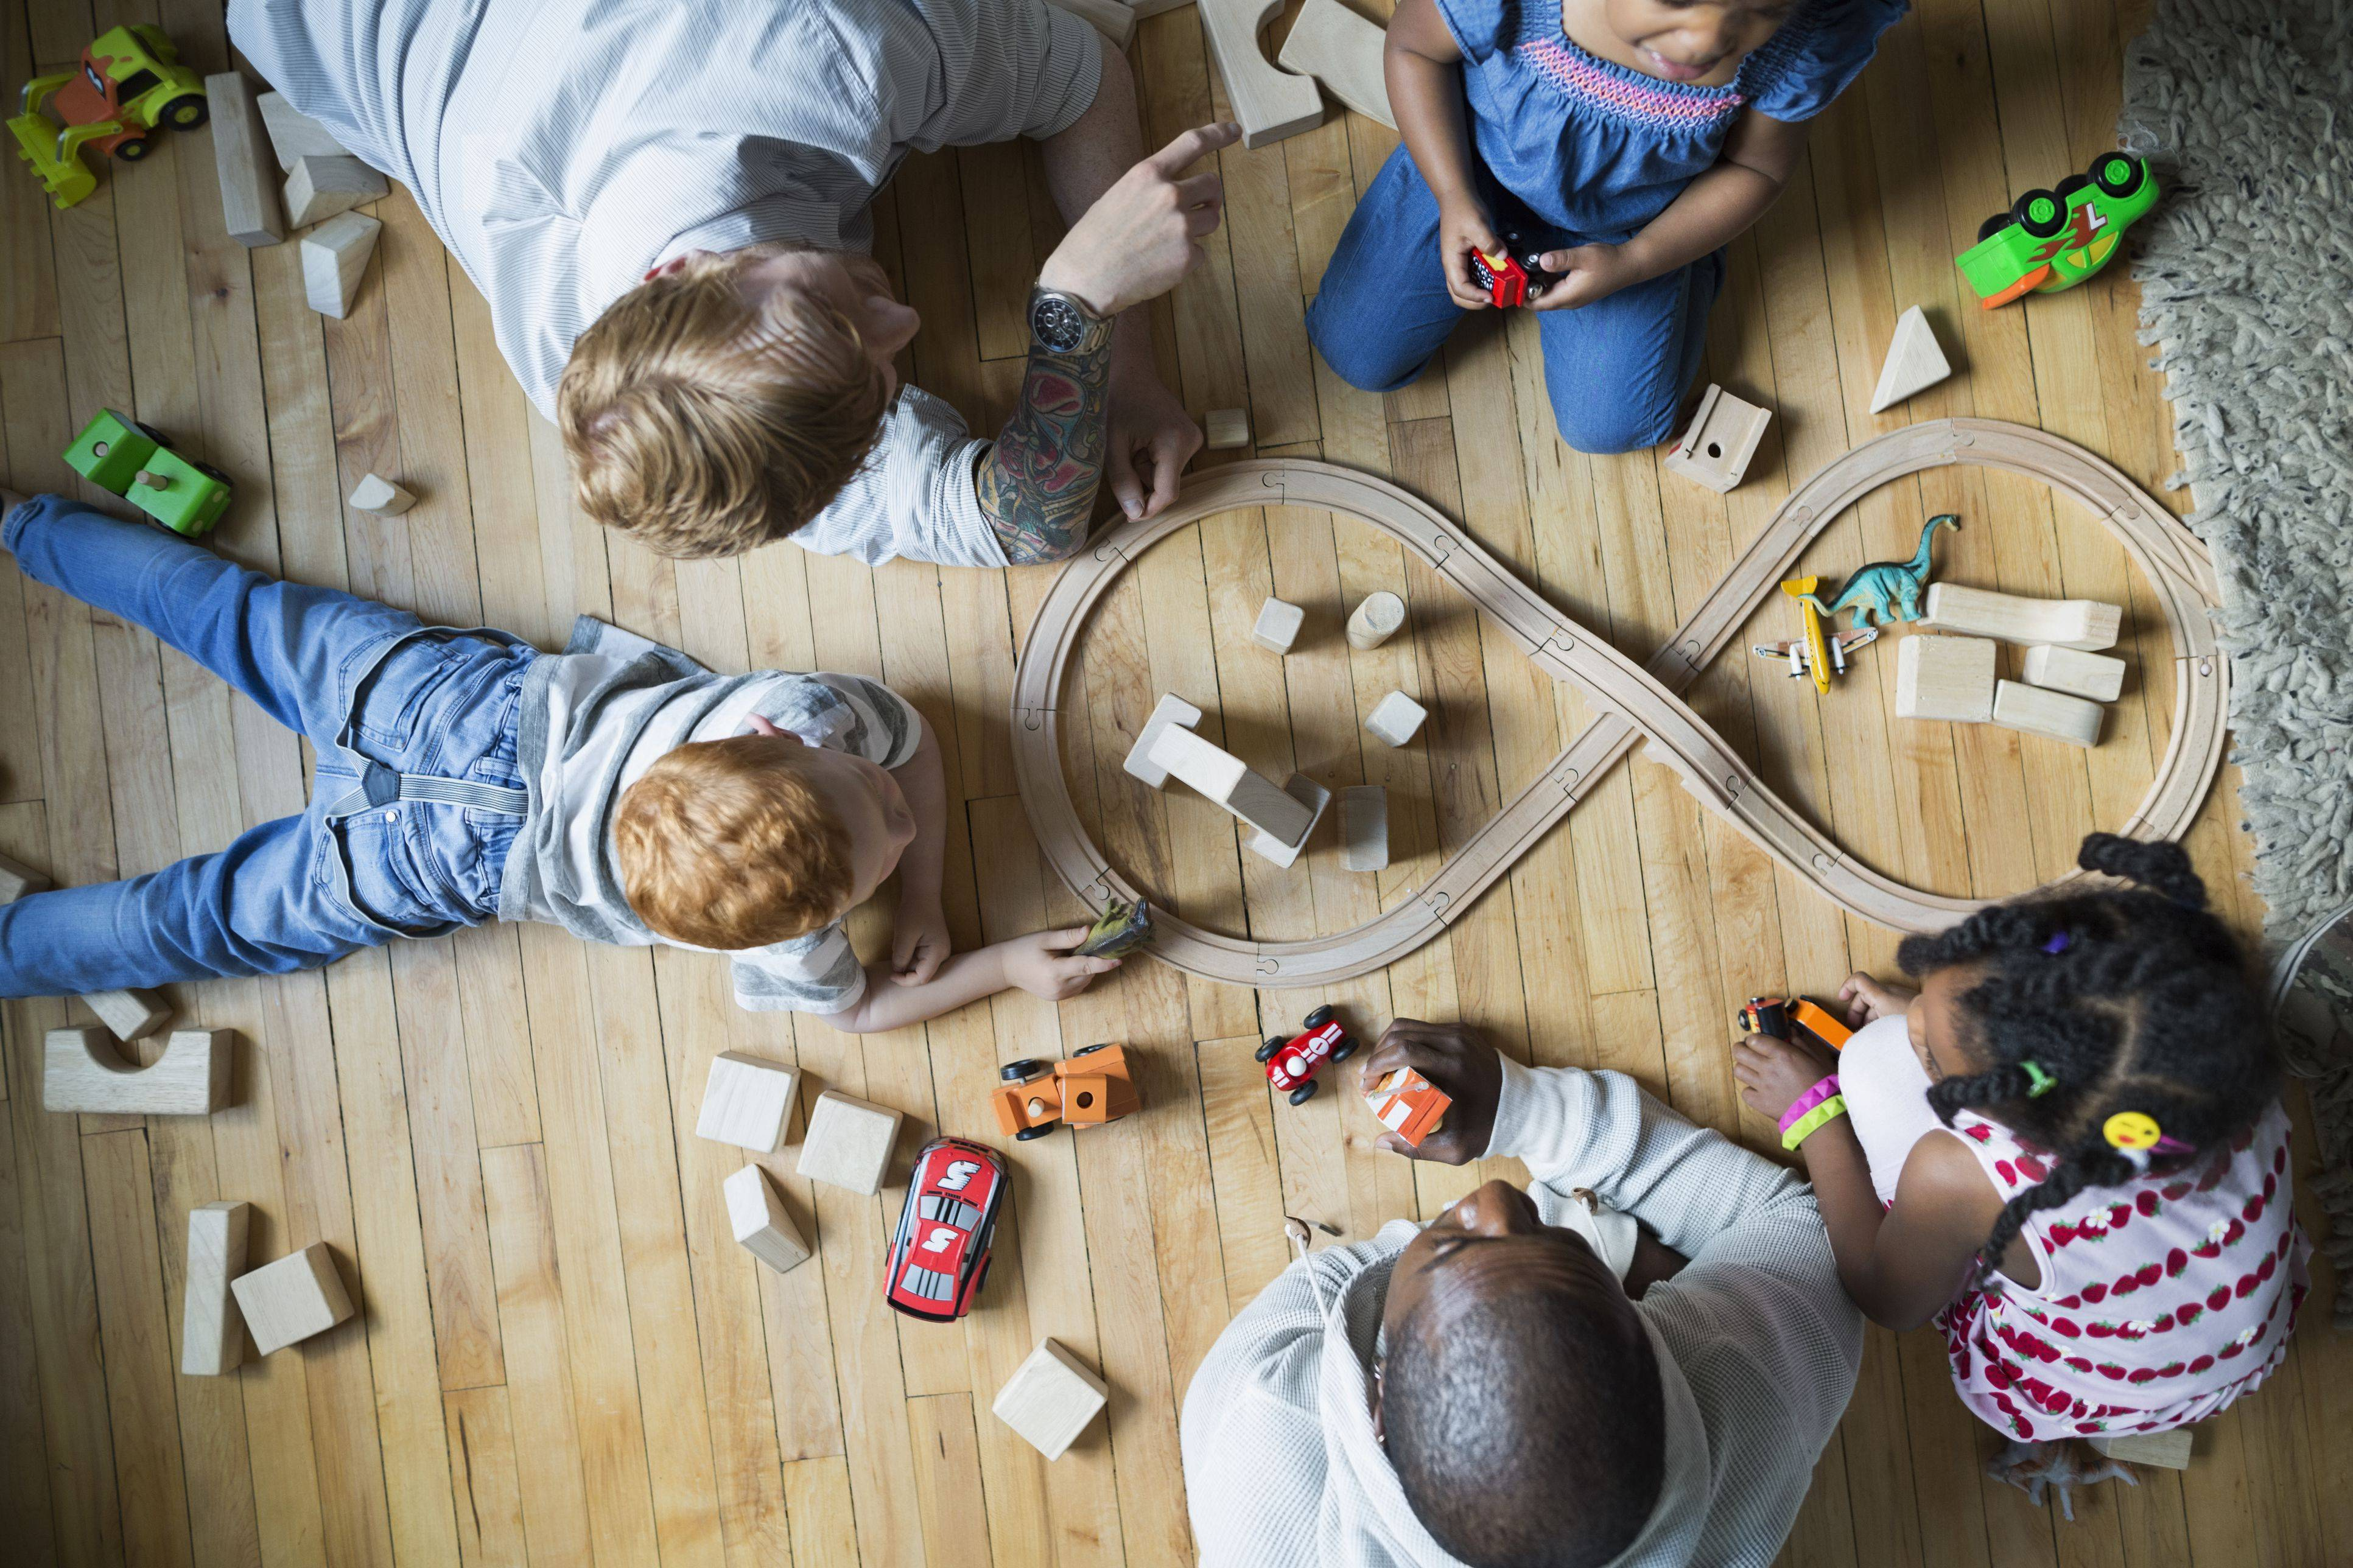 overhead view fathers and children enjoying play date playing with toy train and wood blocks 5a eda a90f8